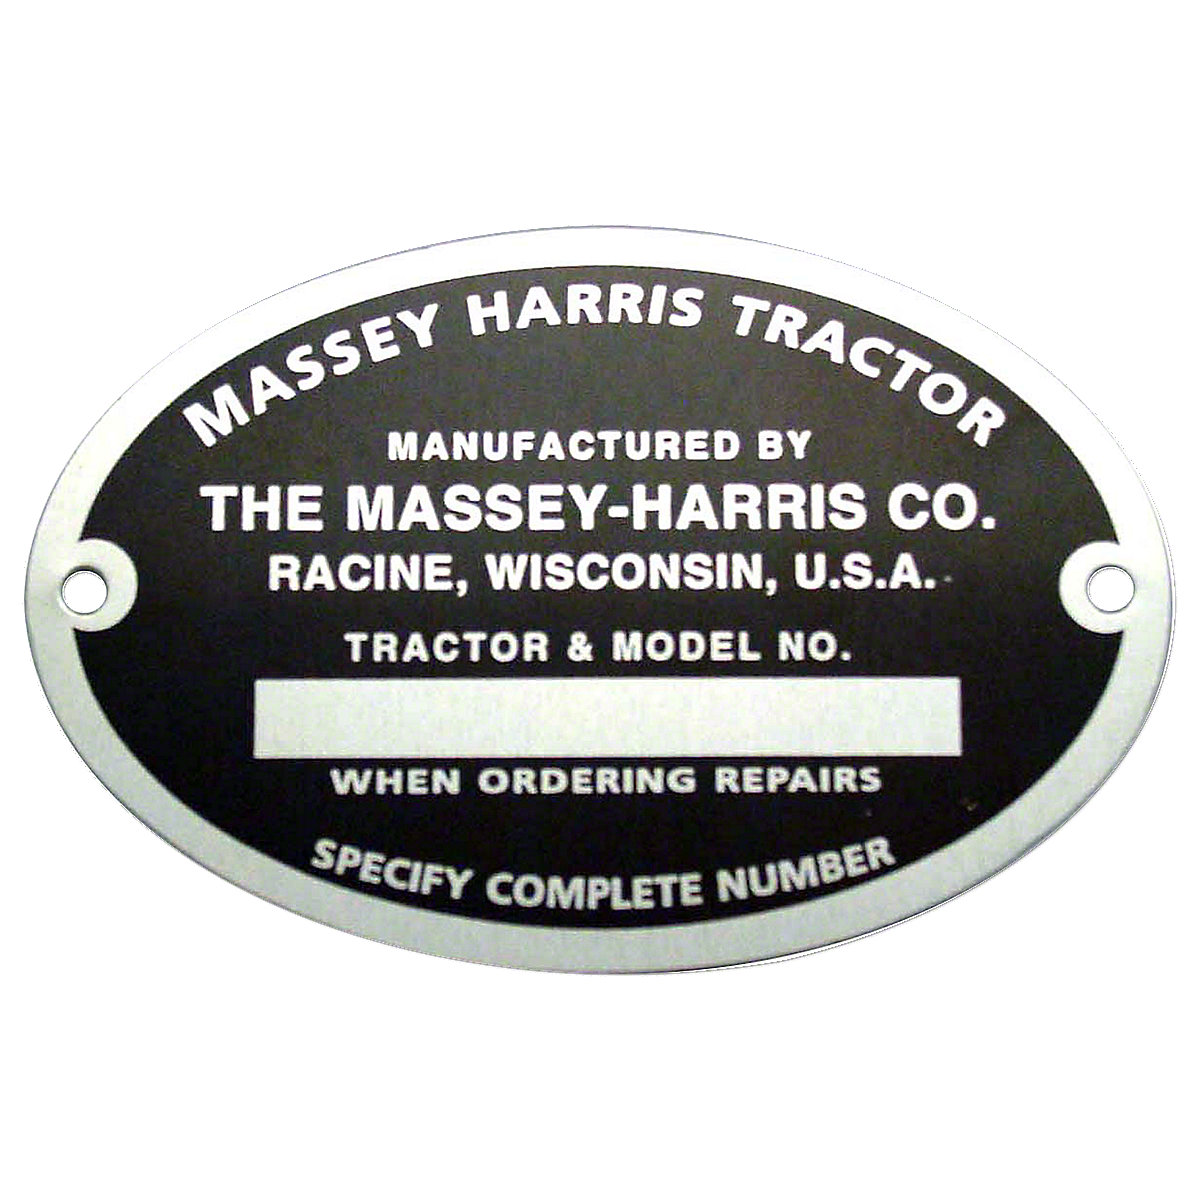 Serial Number Tag With Rivets For Massey Harris: Mustang 23, 101 Jr, 101 Sr, 102 Jr, 102 Sr, 22, 30, 44, 55.